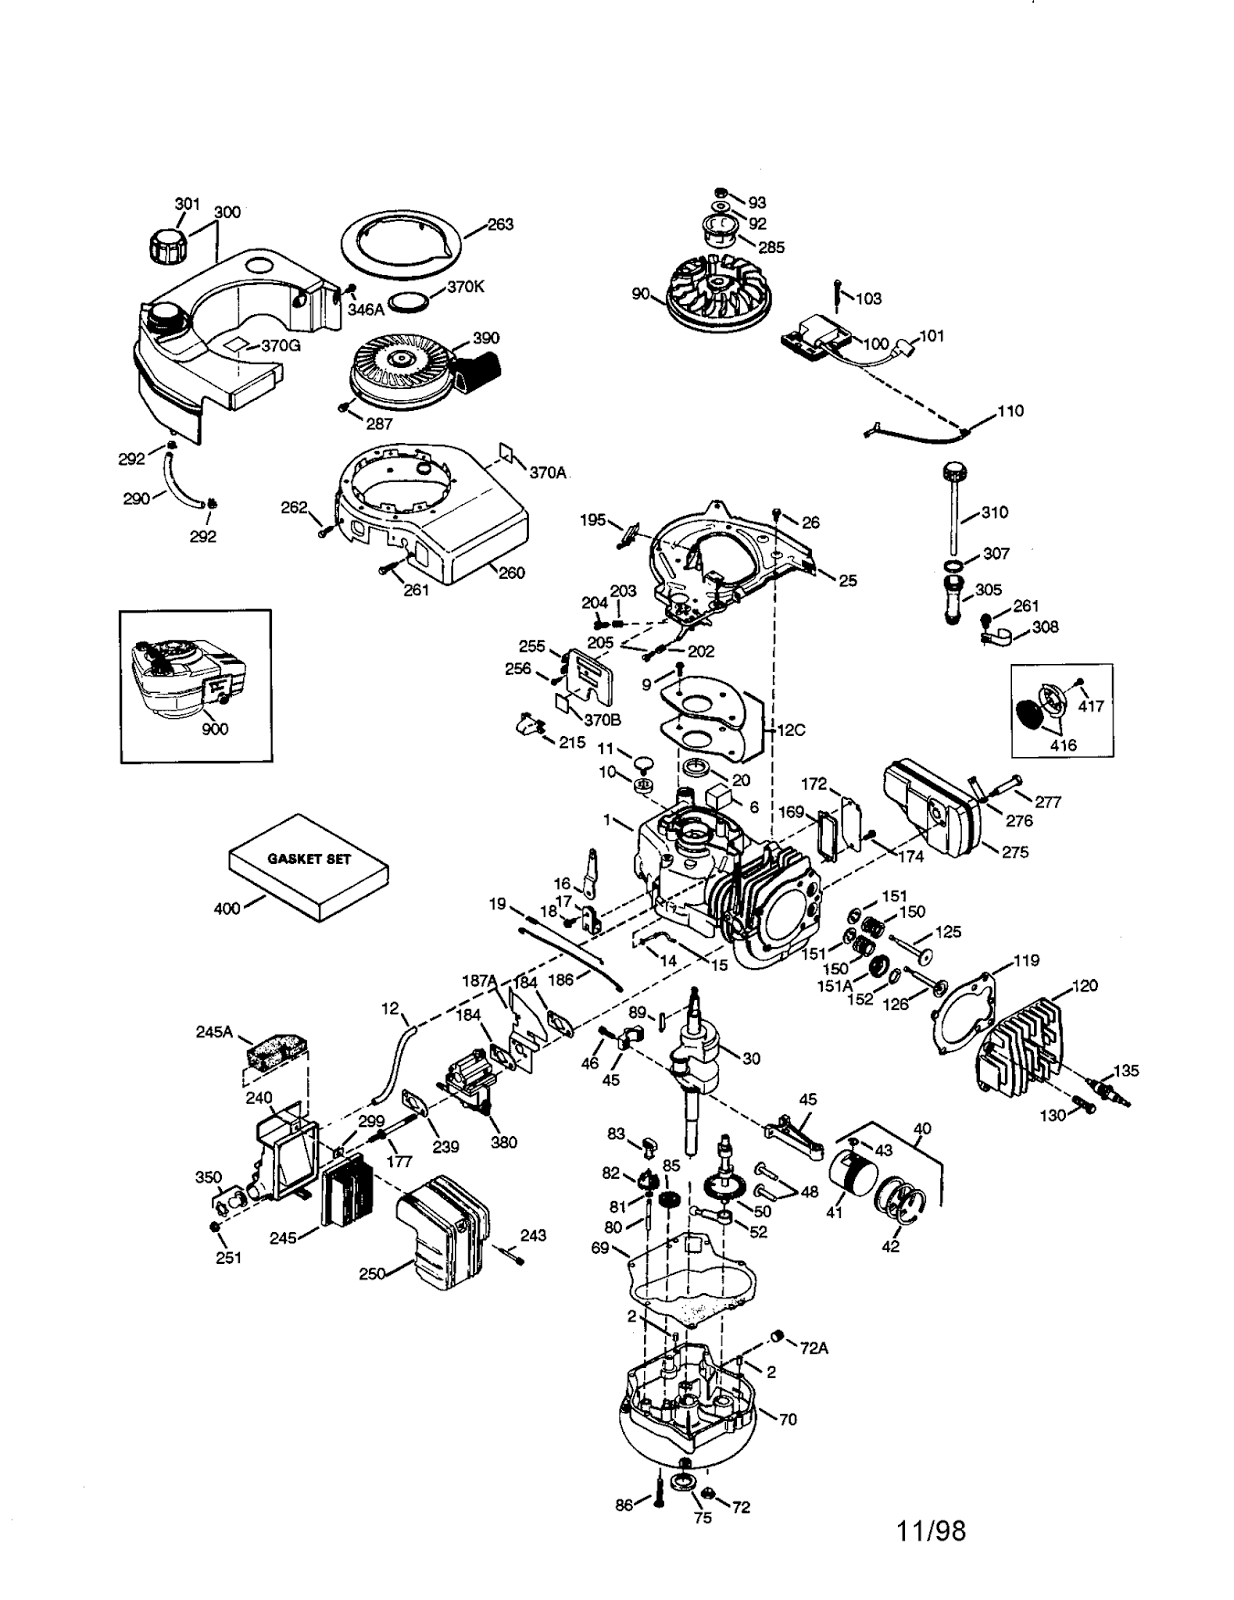 Free Service Repair Manual Tecumseh engine parts diagram – Honda Gx390 Wire Diagram